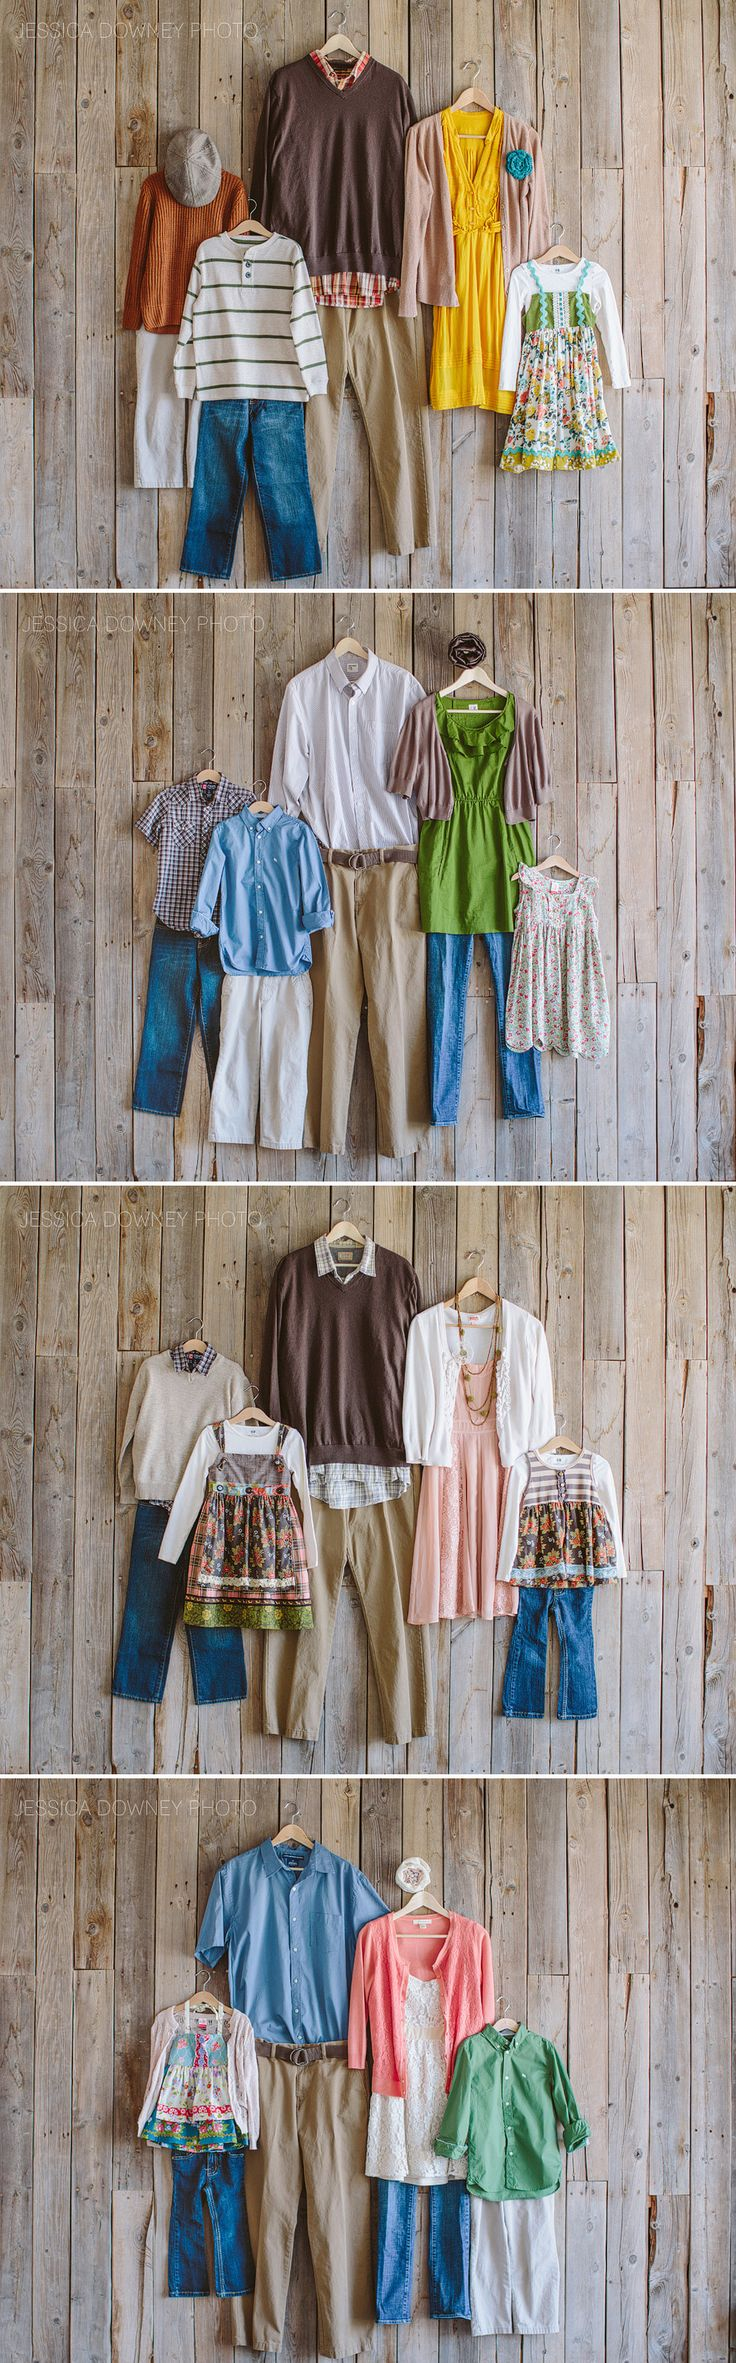 What to Wear - Tips from a photographer on dressing your family for your session #whattowear #familyphotos #familysession #whippycake #anthro #anthropologie #matildajane What to wear for family pictures.